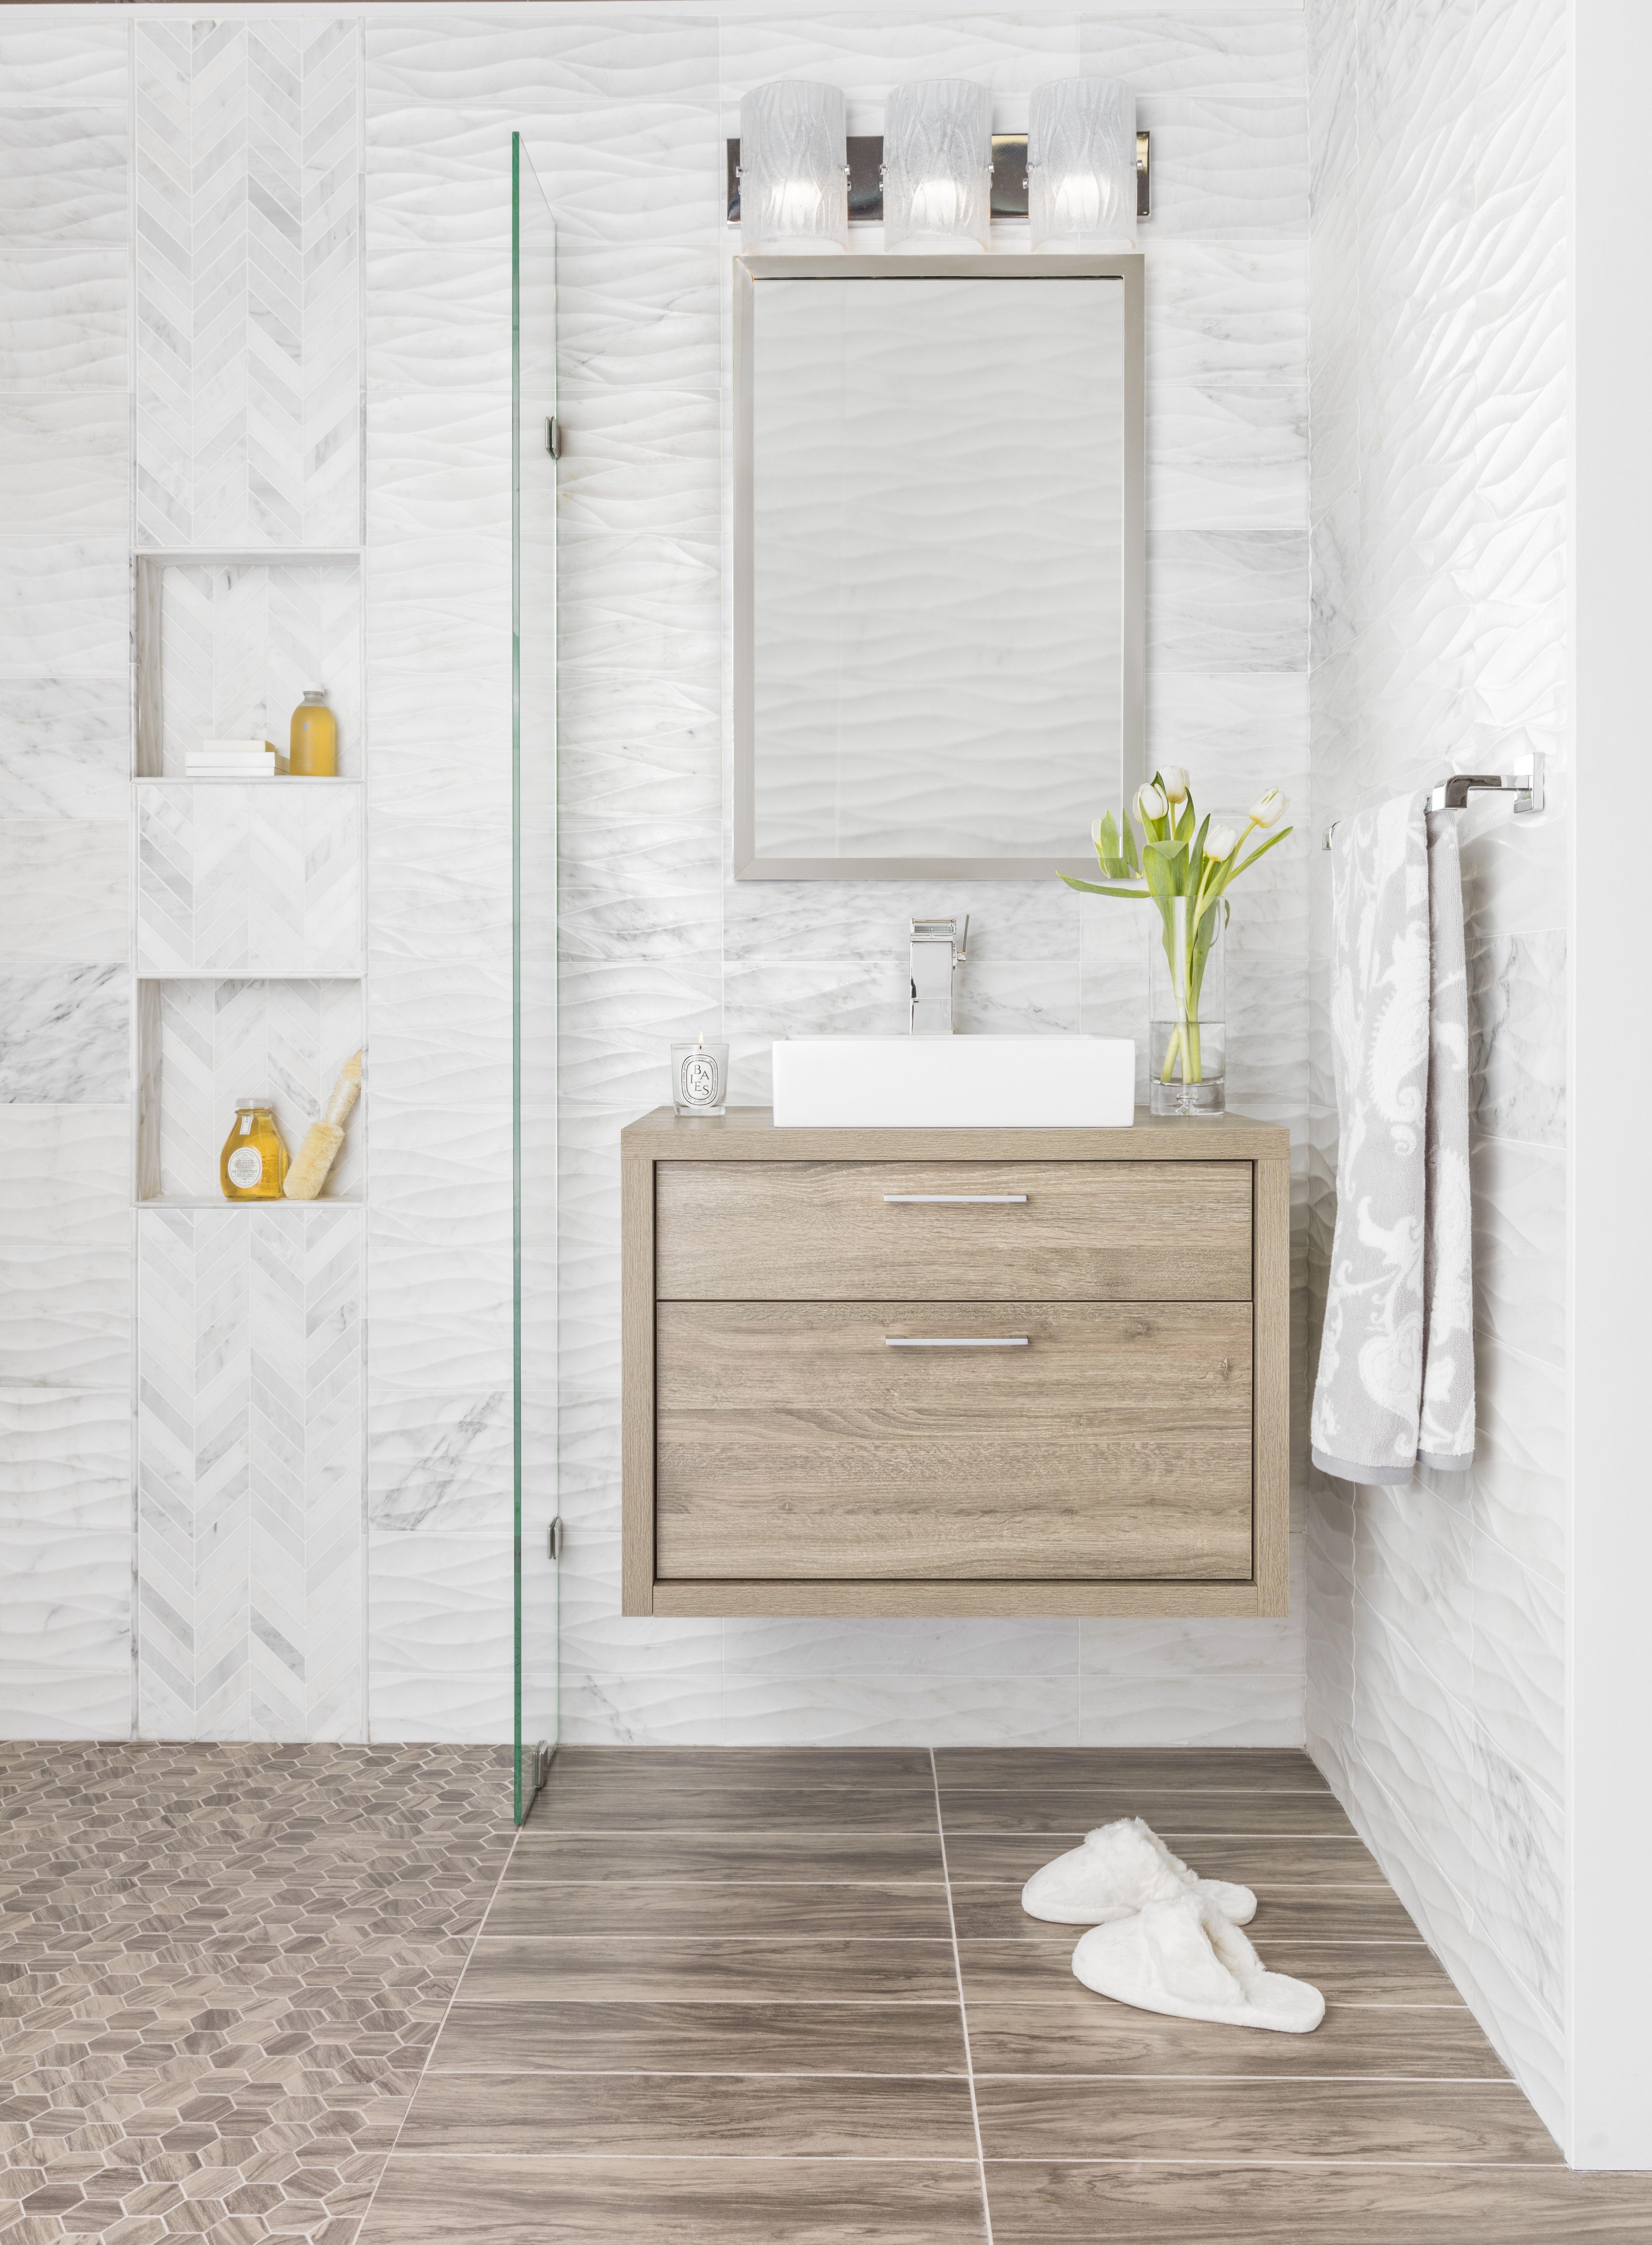 A Neutral Way To Incorporate Different Textures Sizes And Tones Into Your Space The White Carrara Marb Marble Wall Tiles Bathroom Floor Tiles Wood Look Tile